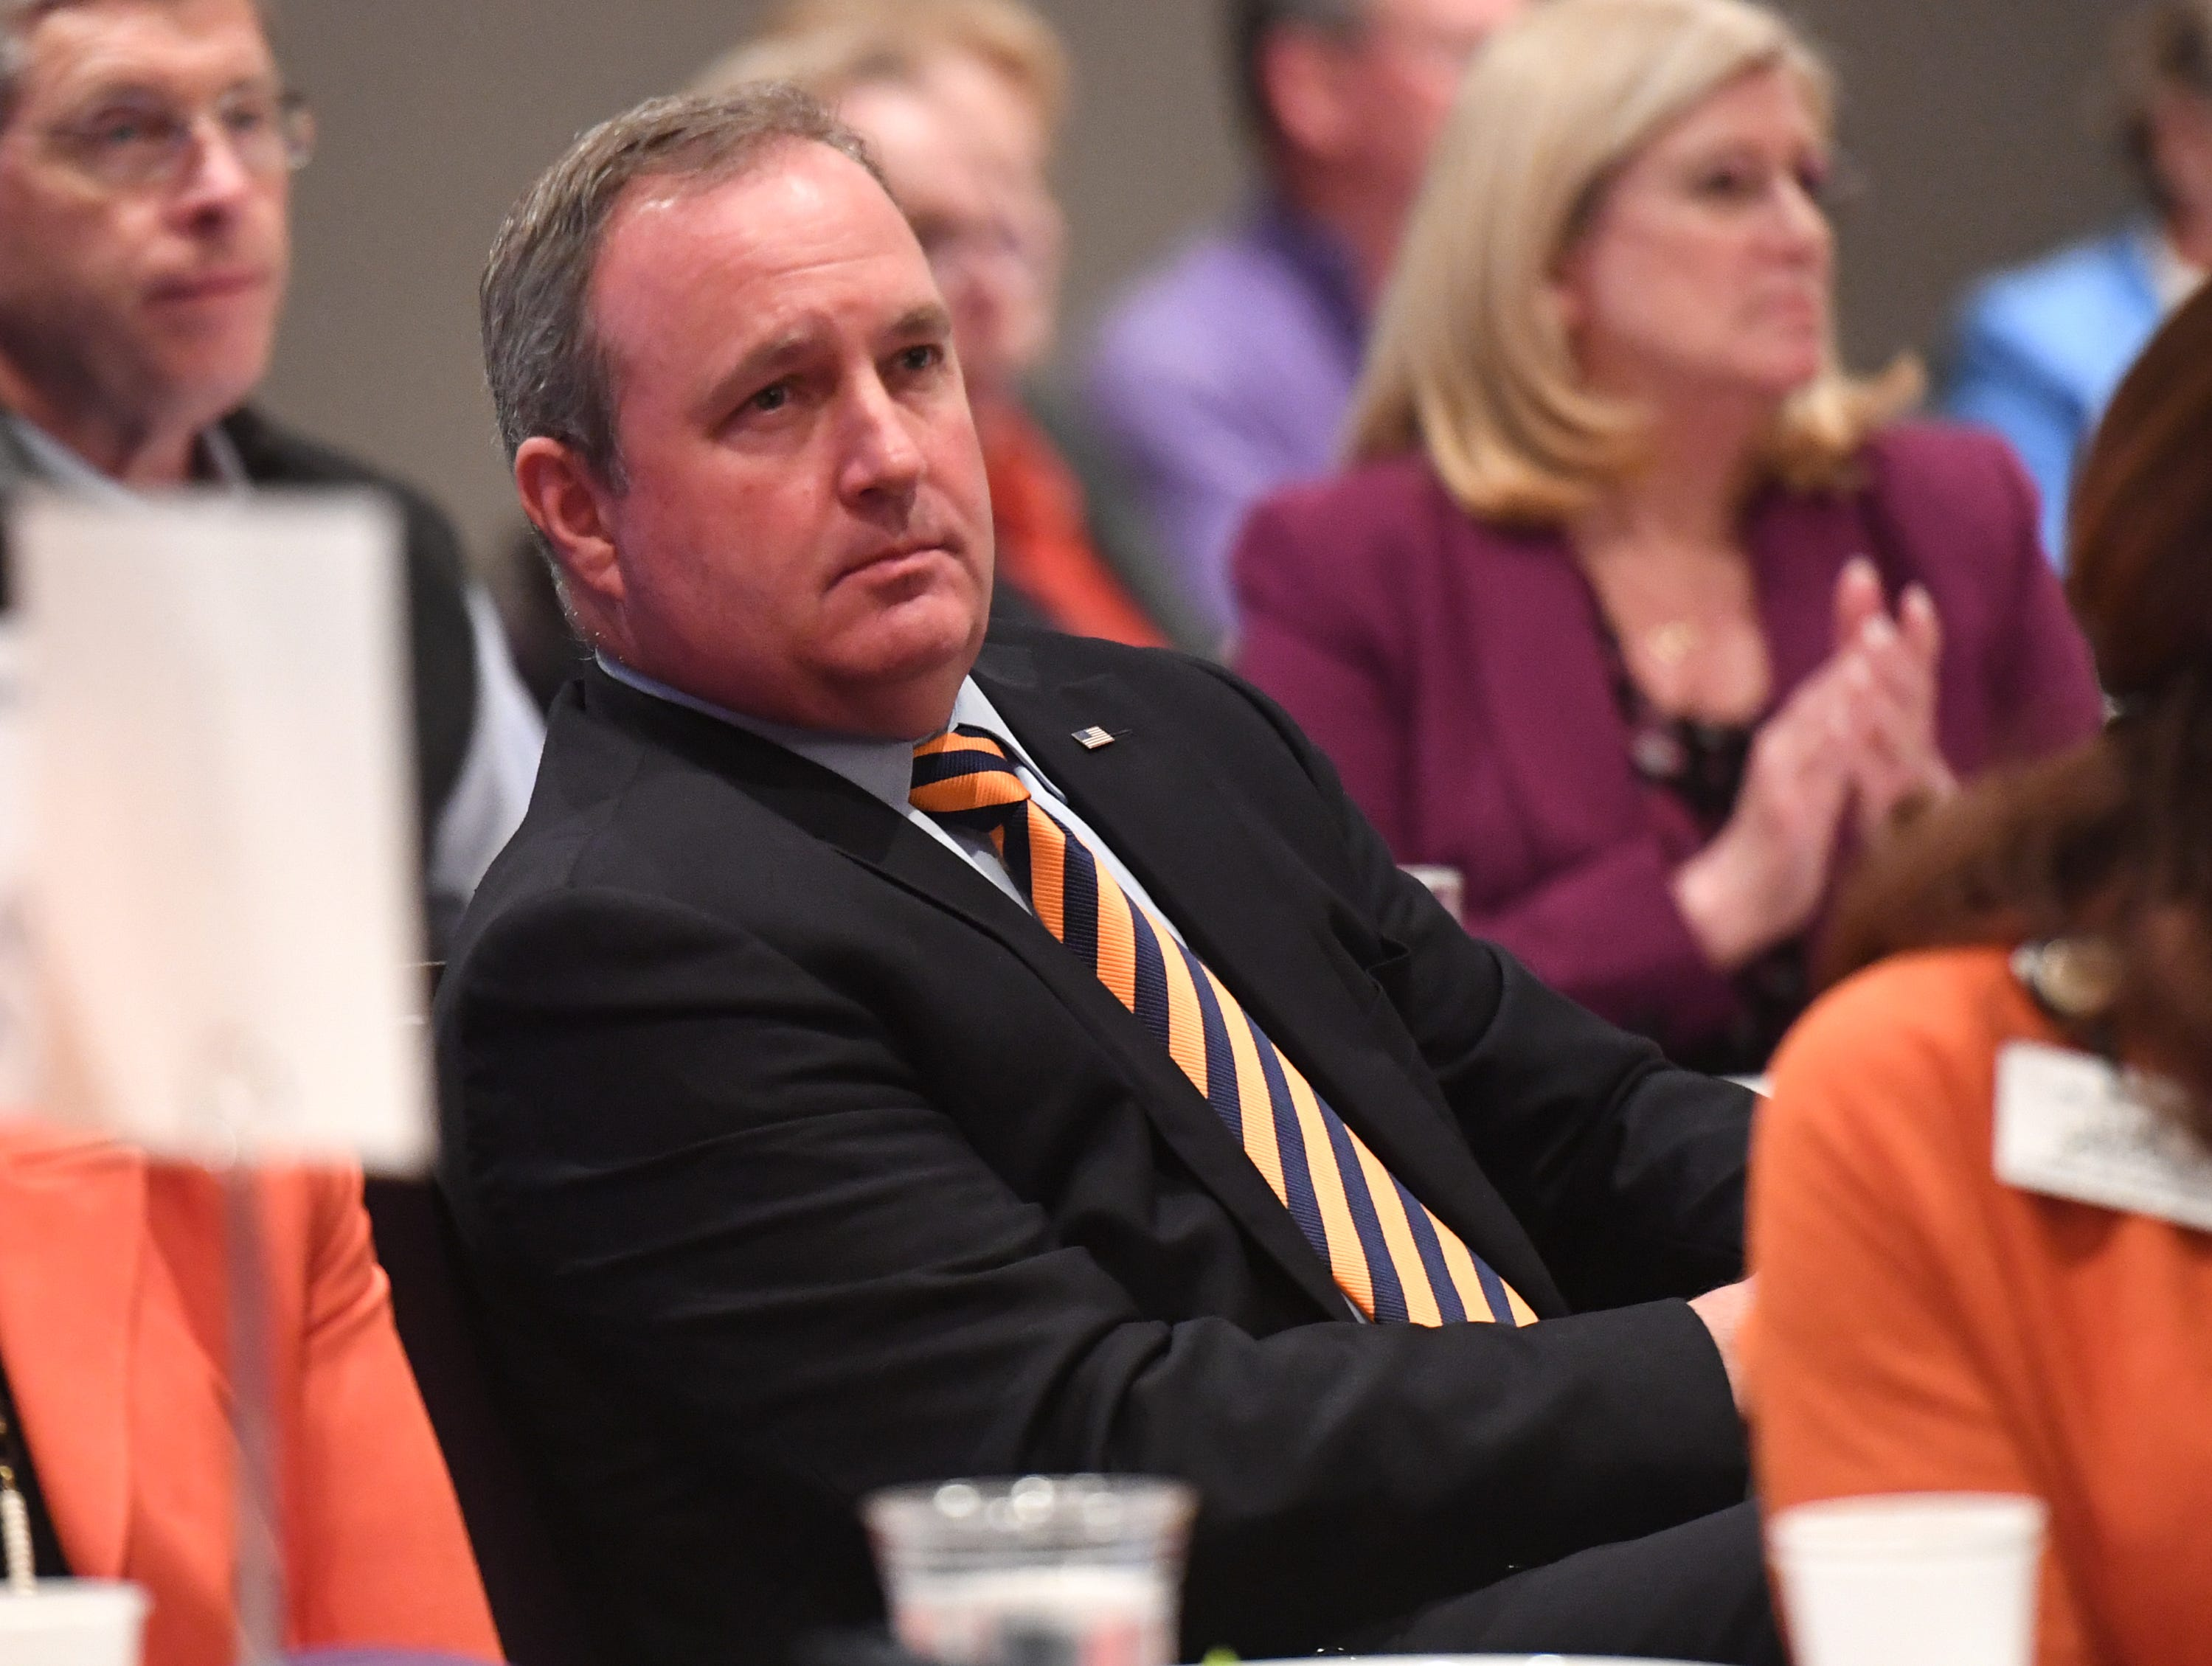 U.S. Rep. Jeff Duncan attends the State of Clemson event held at the Madren Center Tuesday, Feb. 19, 2019.